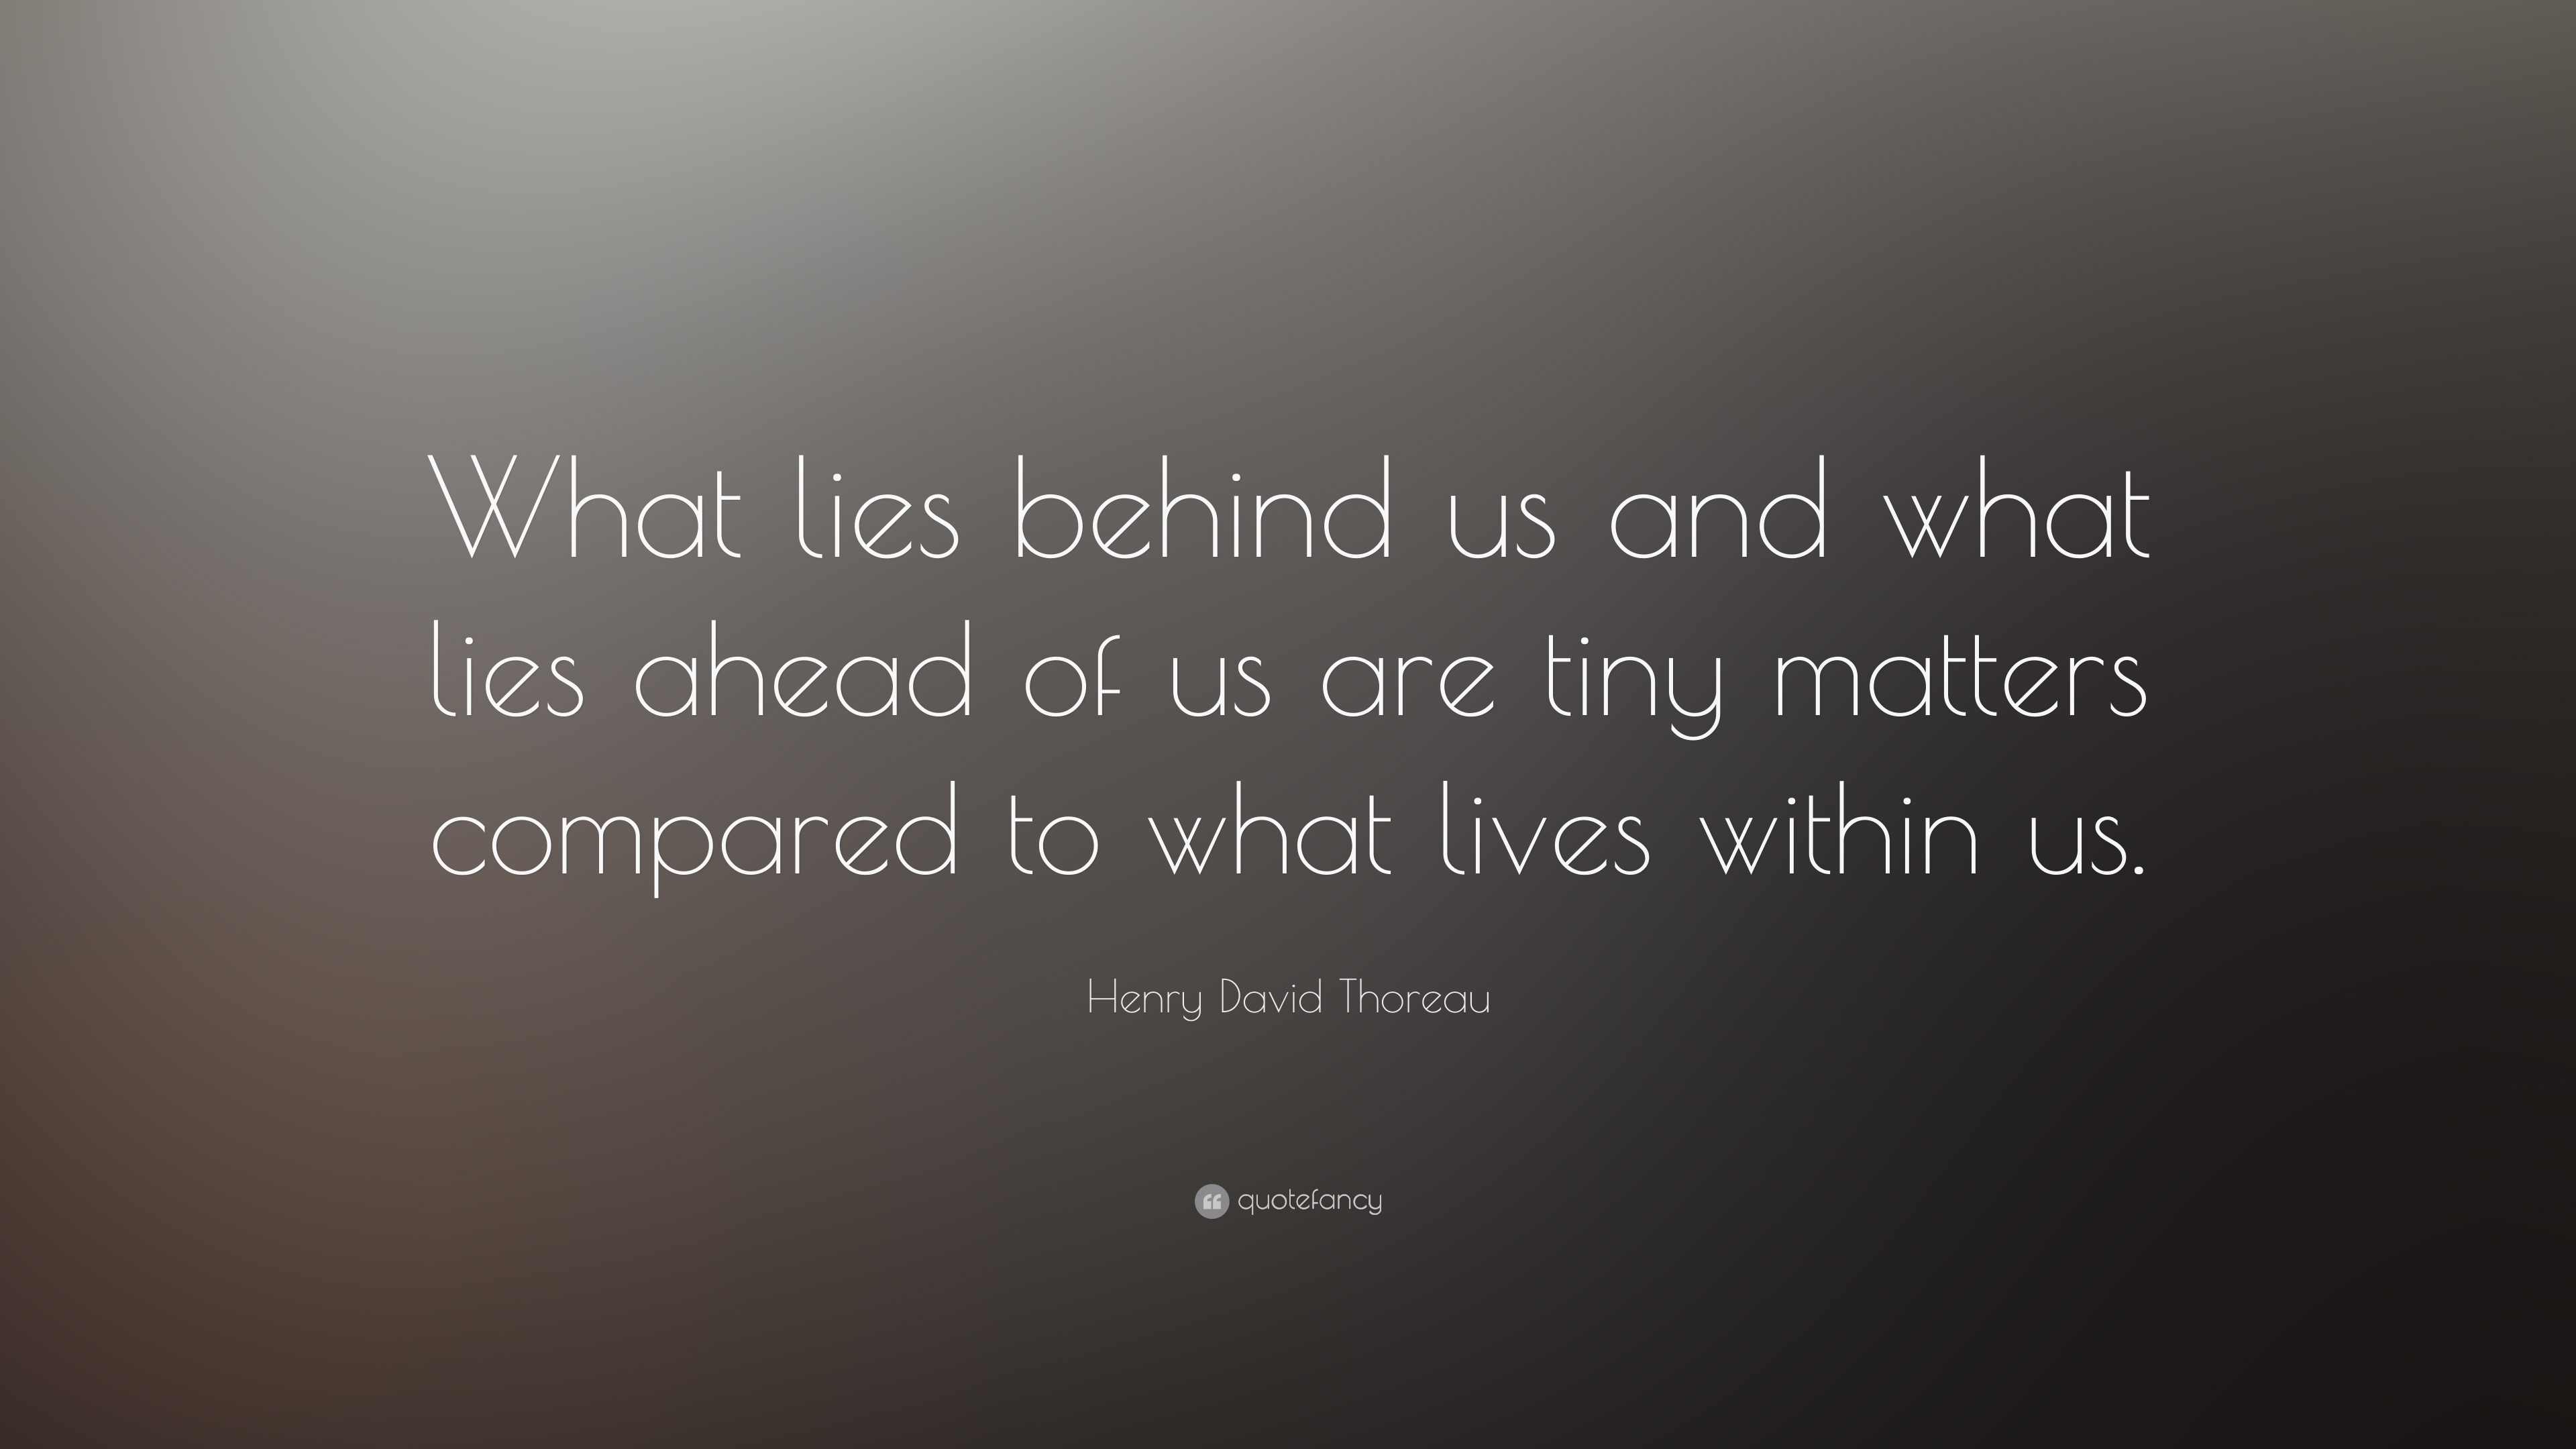 Henry David Thoreau Quote: U201cWhat Lies Behind Us And What Lies Ahead Of Us